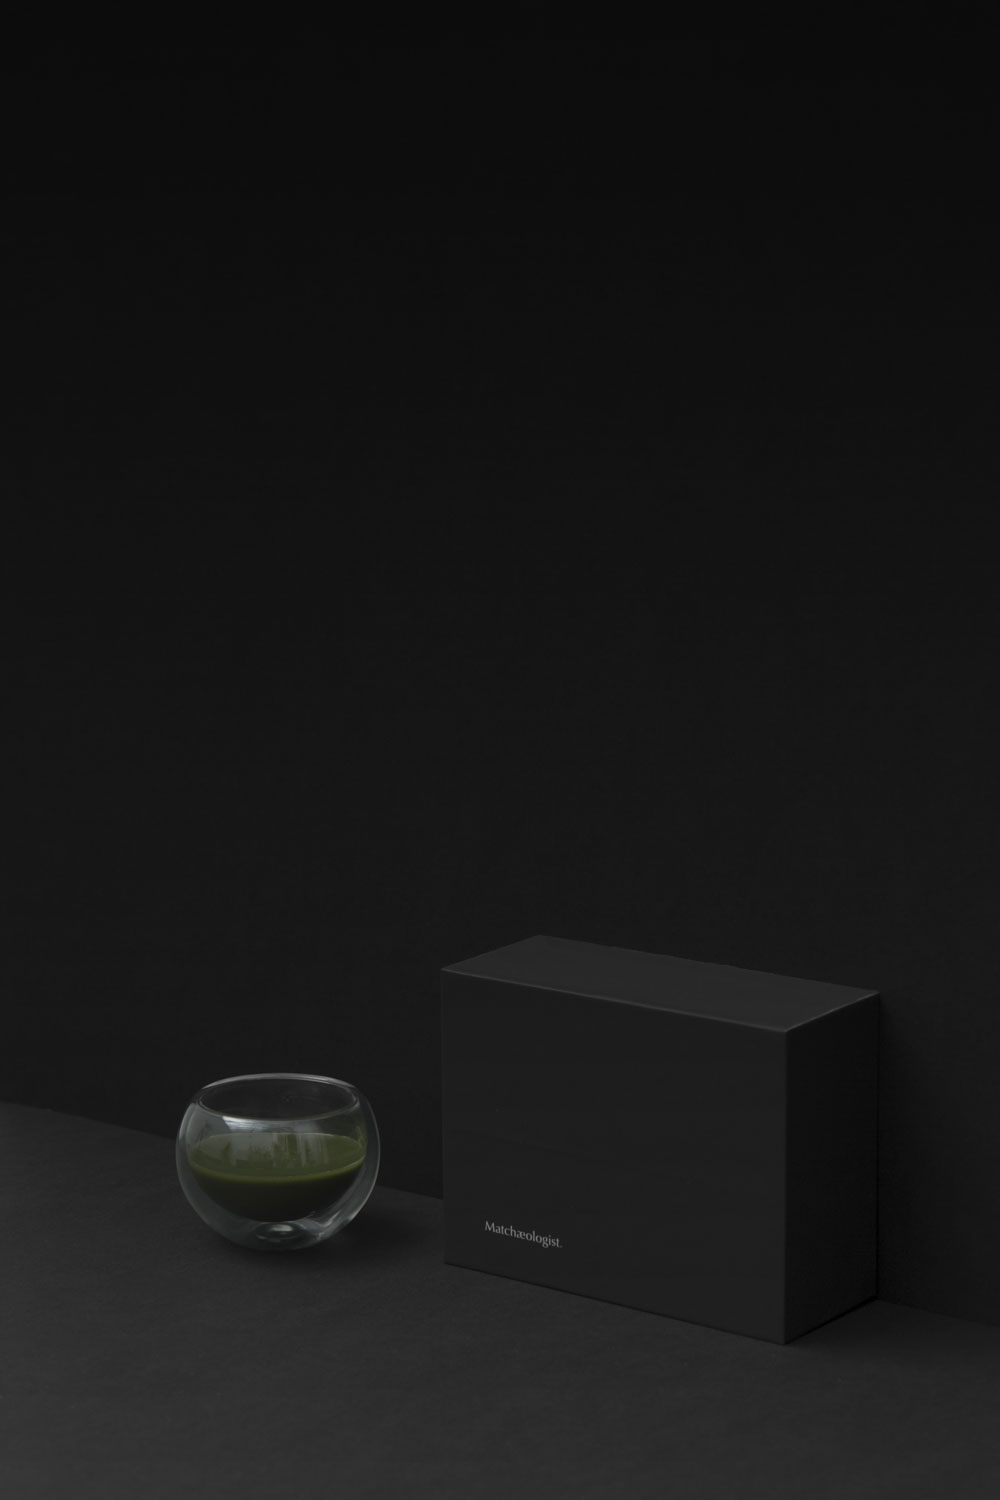 Brewing Kit by Matchæologist    A modern style matcha brewing Kit combines signature artisanal grade matcha by Matchæologist   with a carefully selected assortment of handcrafted matcha-ware products curated and designed to balance traditional ceremonial values with contemporary functionality.